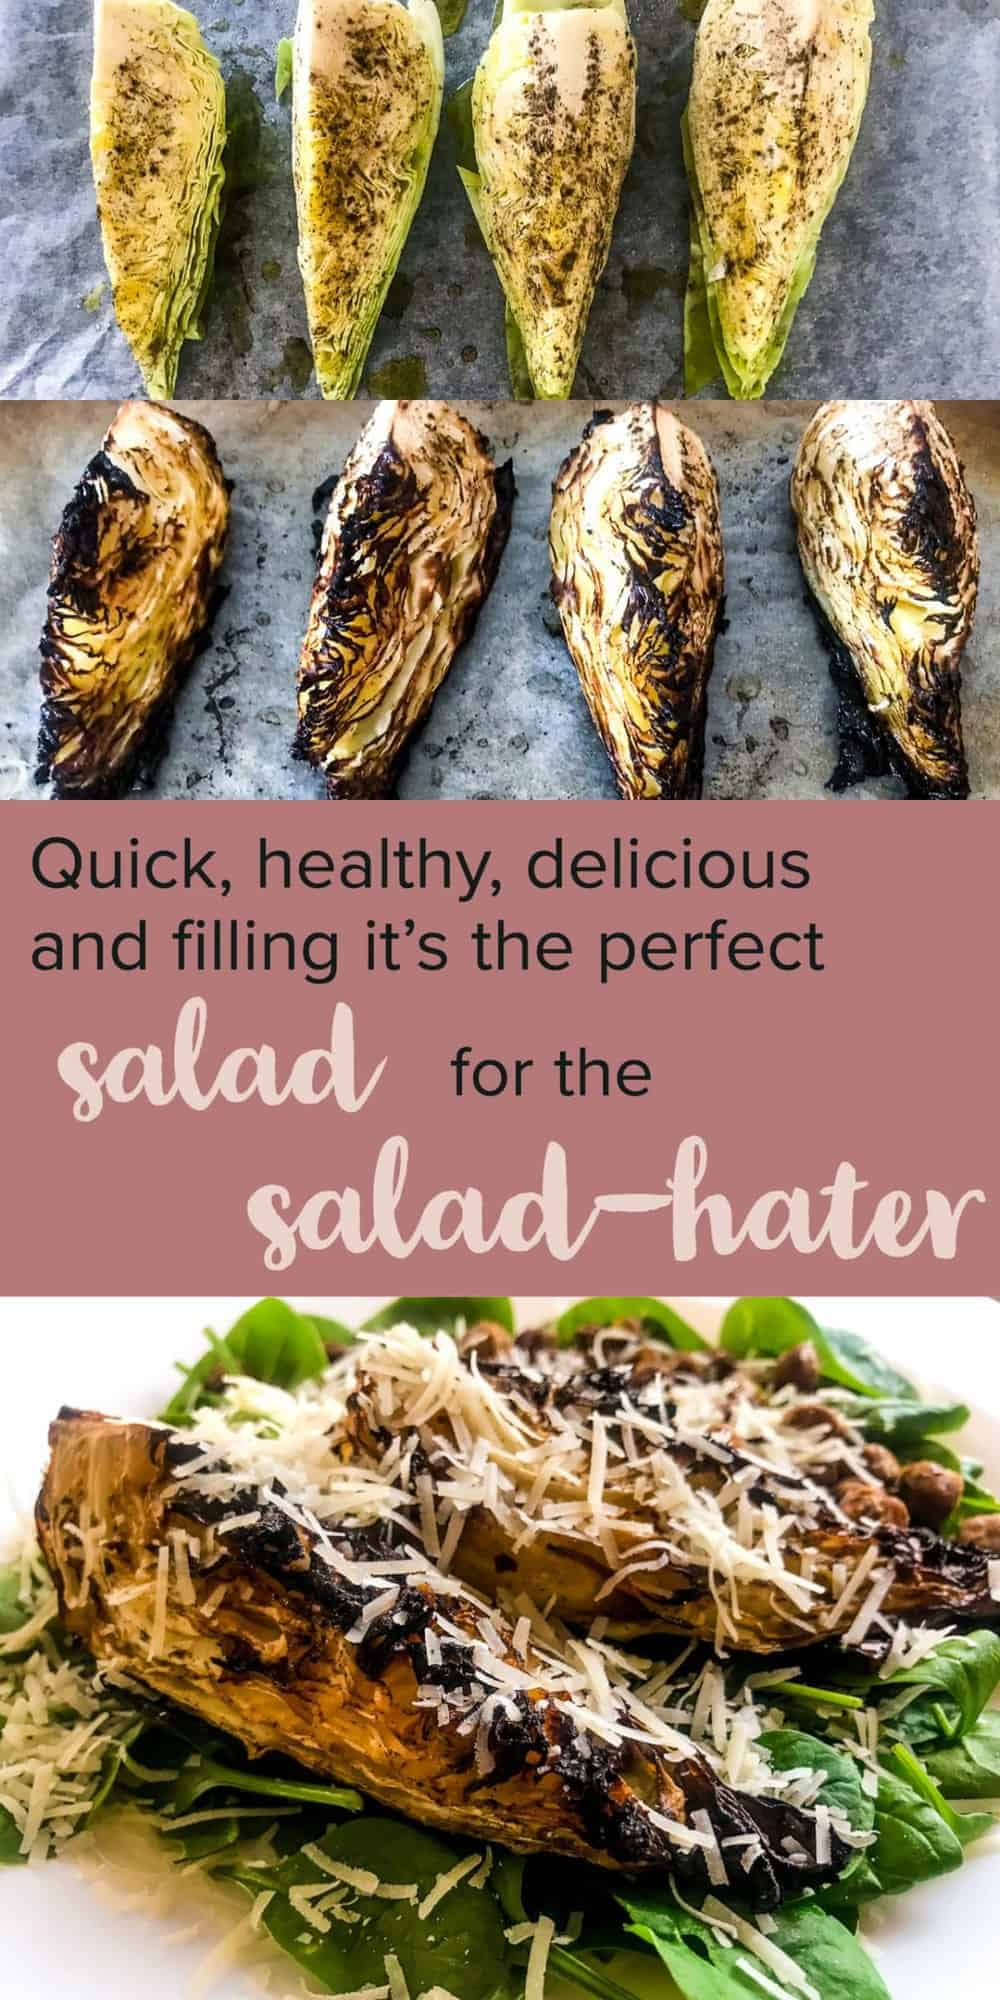 Simple, healthy, quick and delicious - this Pointed Cabbage Salad with Gyoza Chickpeas is sure to leave you full and hella satisfied, all while being filled with healthy goodness. Oh, and it's perfect to make ahead for lunch or dinner as well! #alwaysusebutter #fillingsalad #saladrecipes #salad #healthyrecipes #healthy #gyoza #chickpeas #recipes